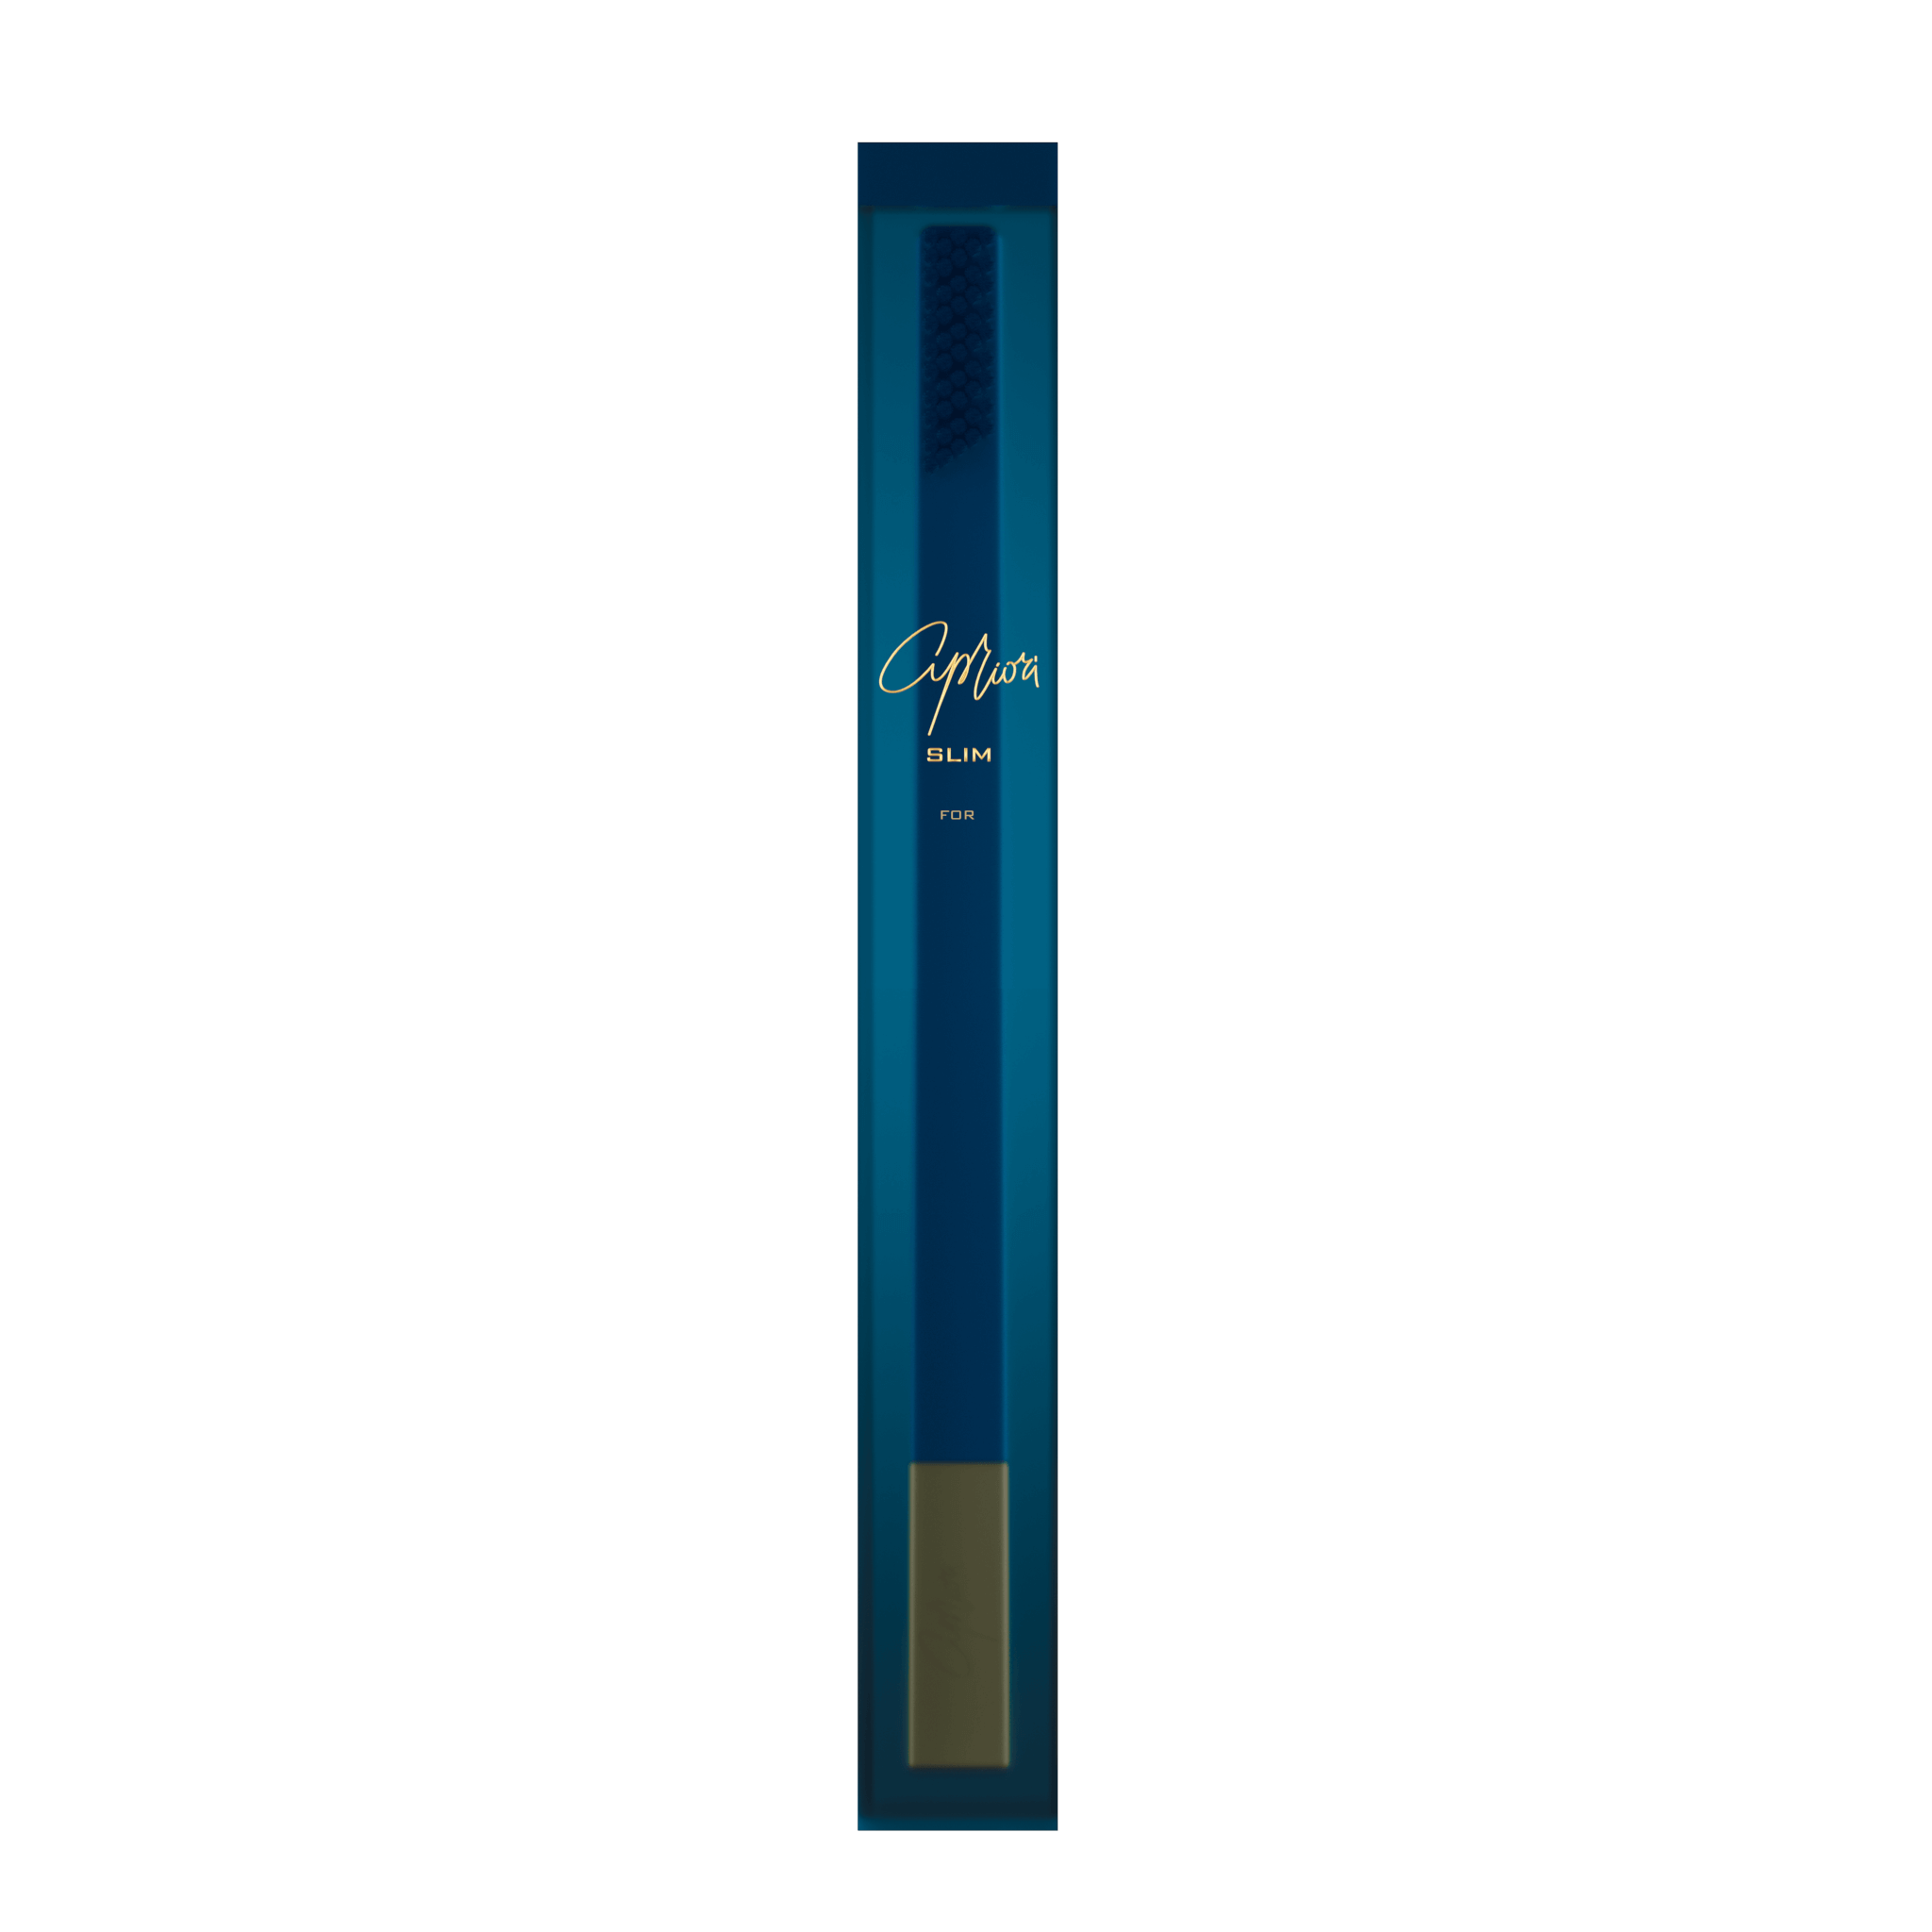 SLIM by Apriori sapphire & gold designer toothbrush package